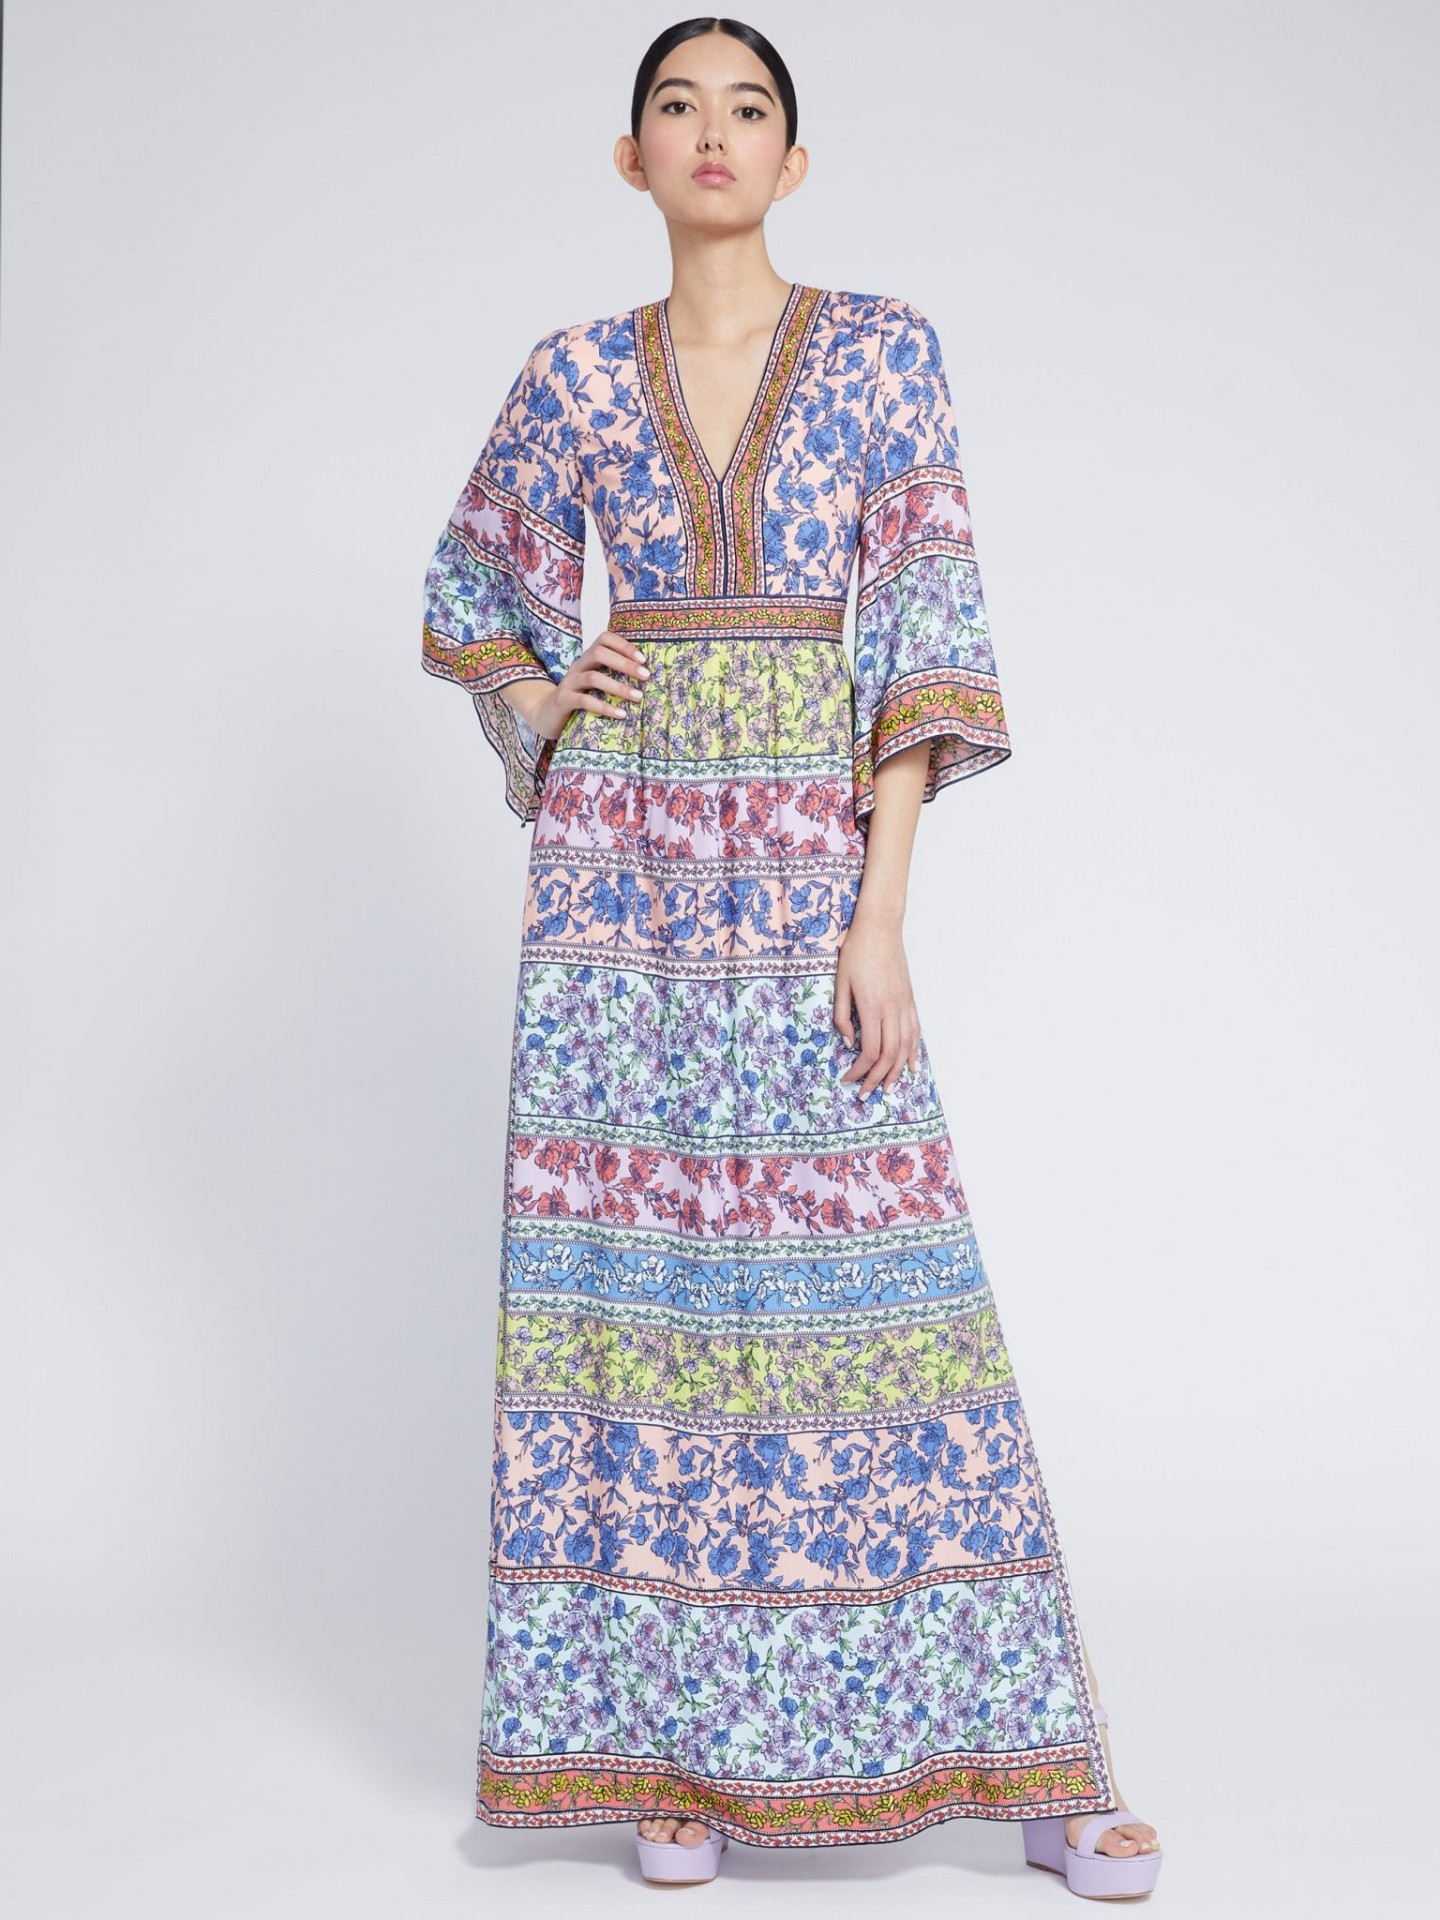 ALICE AND OLIVIA Lena Embroidered Kimono Dress